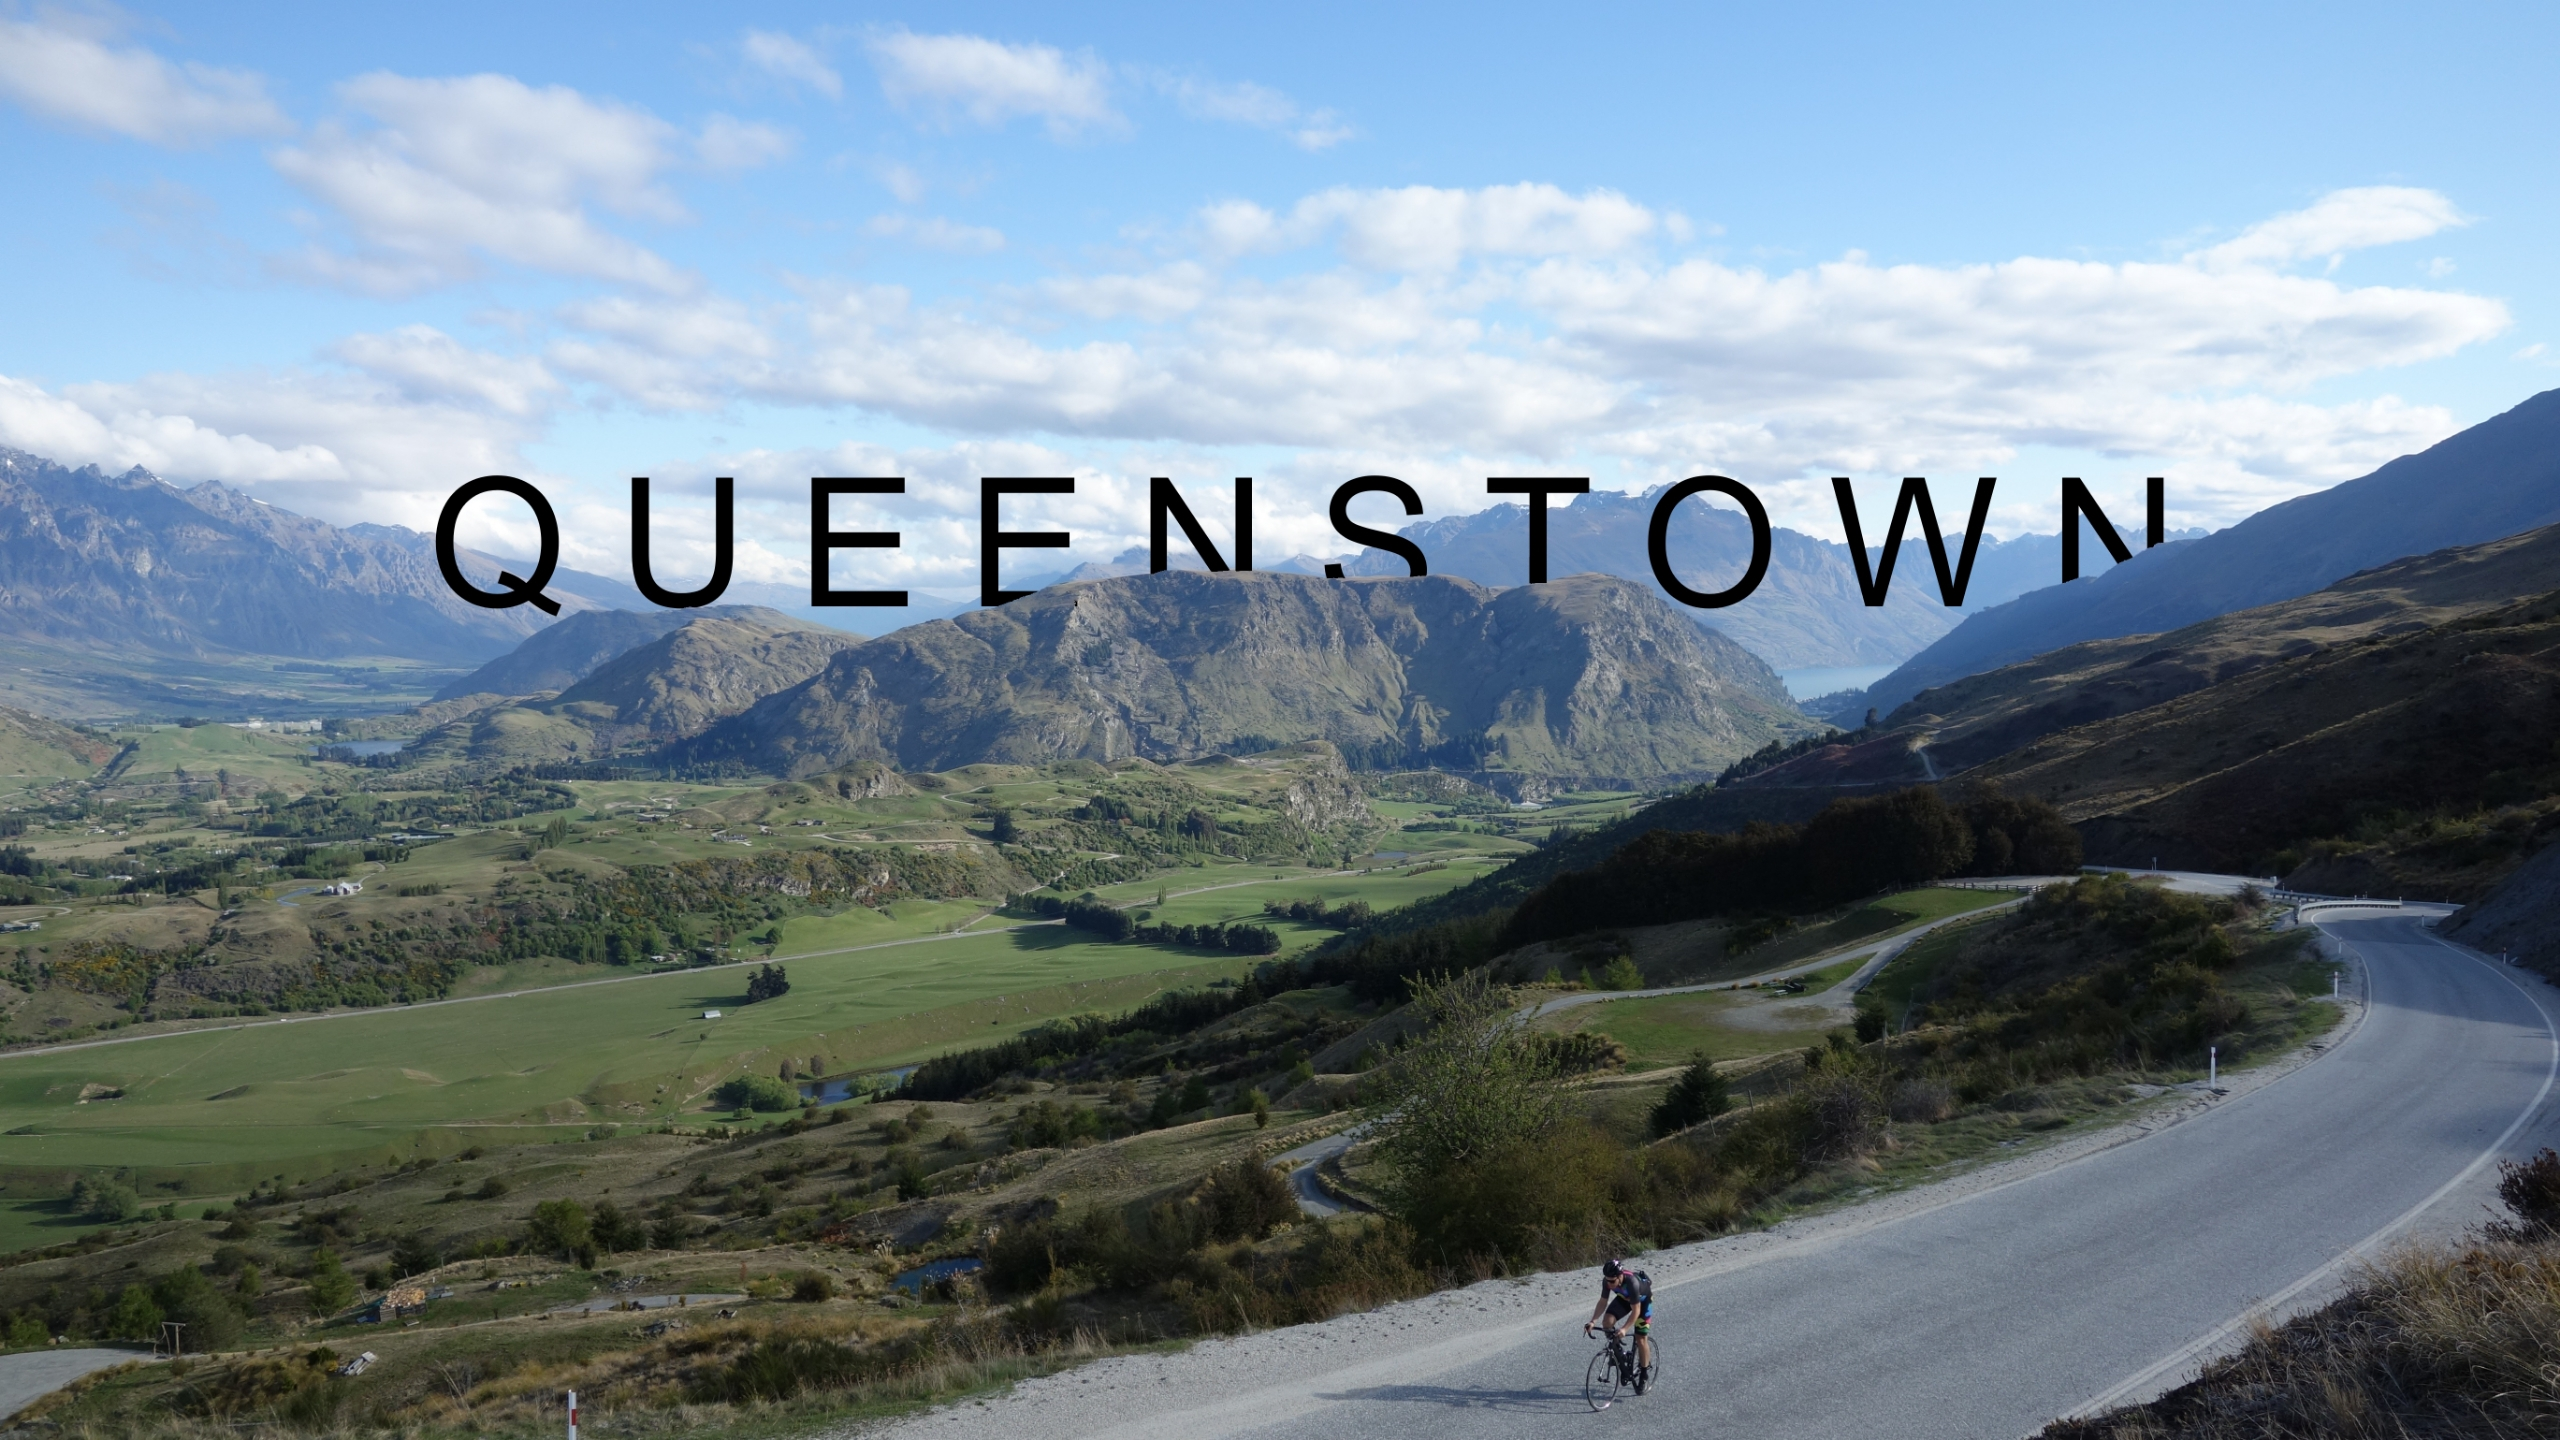 QUEENSTOWN, 2015 write July 201 - mr-henry-y | ello